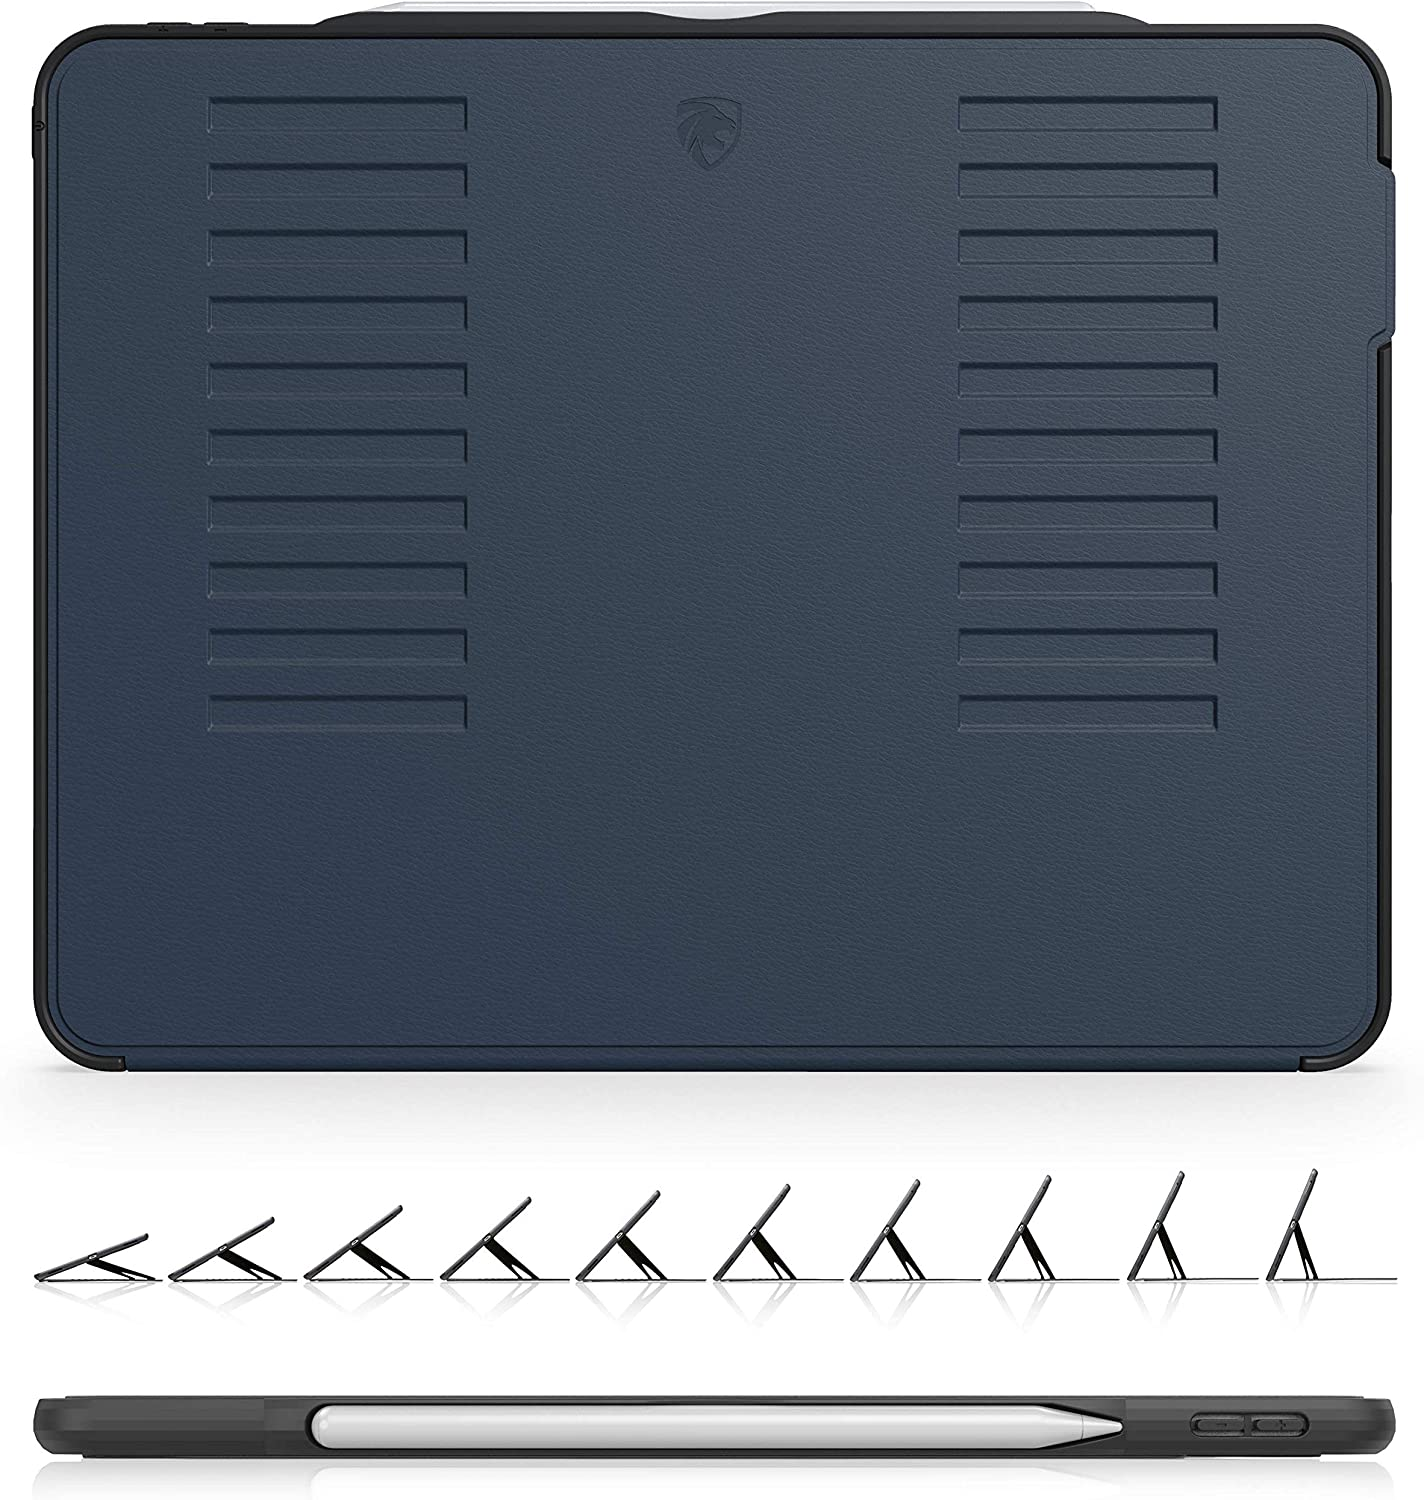 The Muse Case - 2018 iPad Pro 12.9 inch 3rd Gen (Old Model) - Very Protective But Thin + Convenient Magnetic Stand + Sleep/Wake Cover by ZUGU CASE (Navy Blue) (Model #'s A1876, A2014, A1895, A1983)